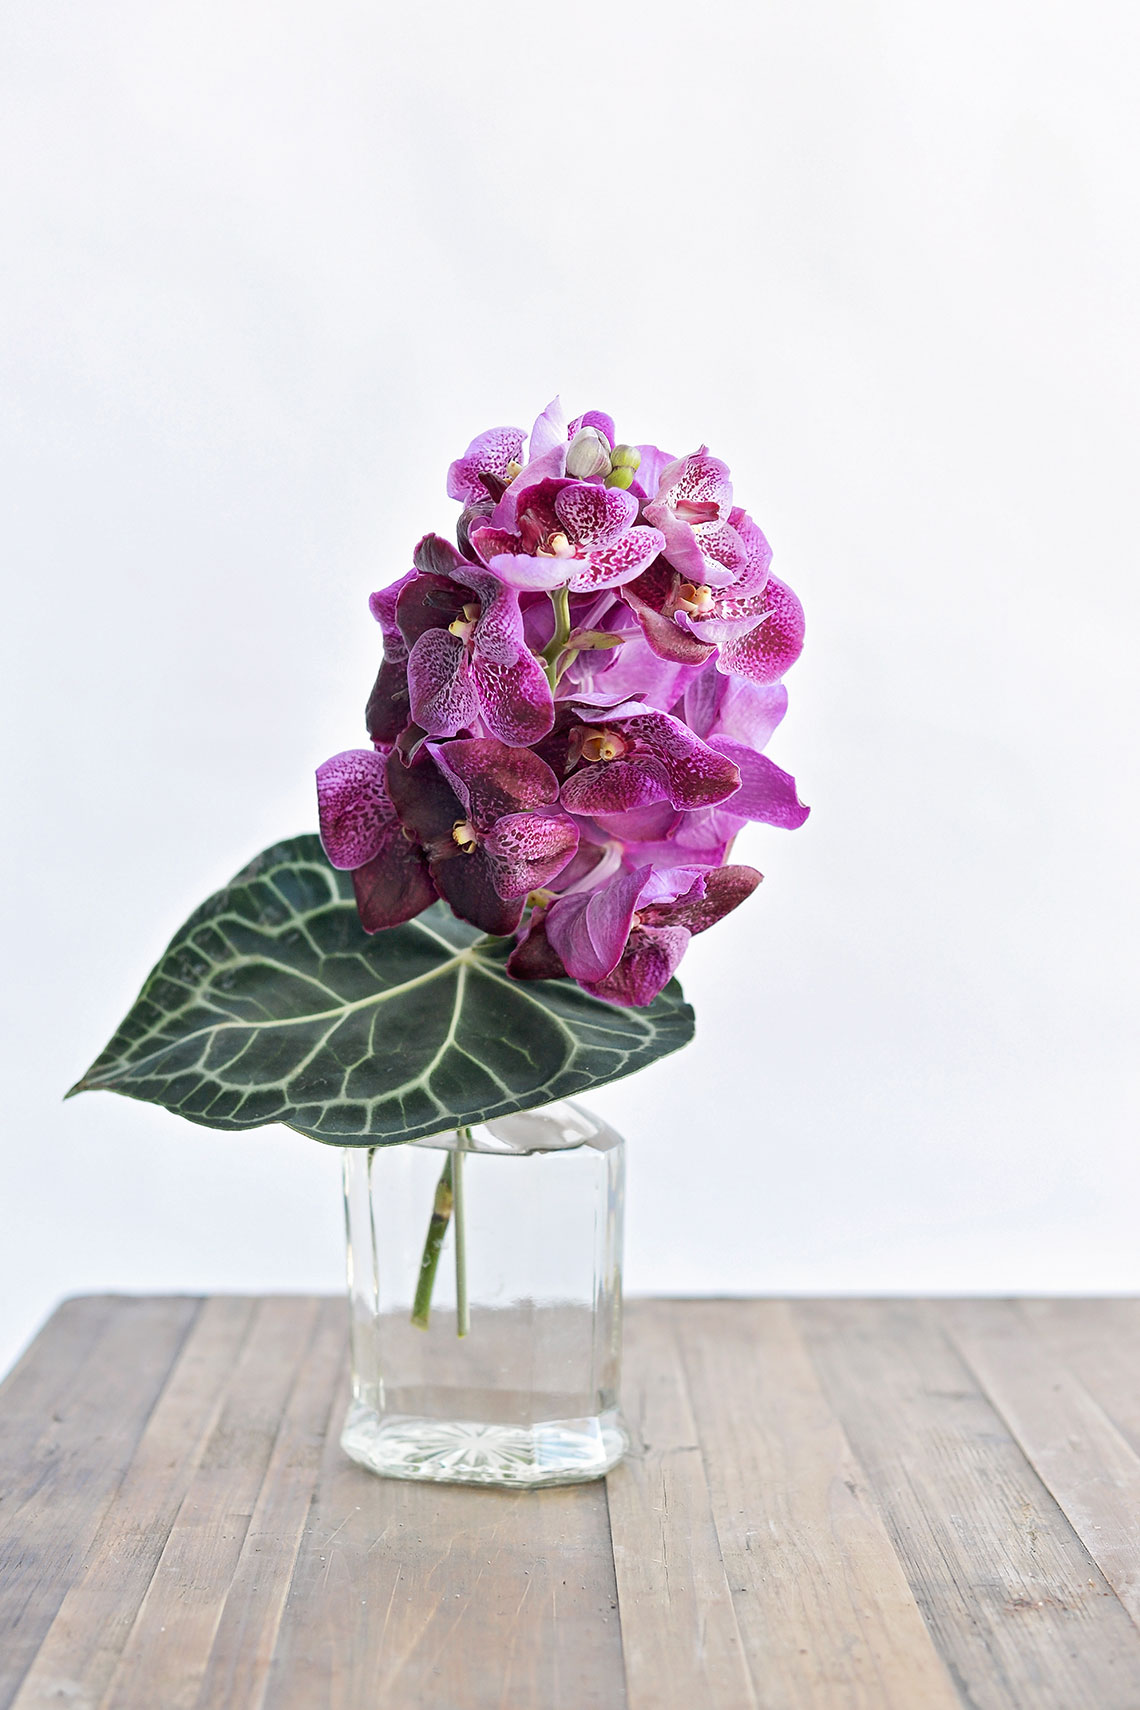 Corporate flowers in vase on bench